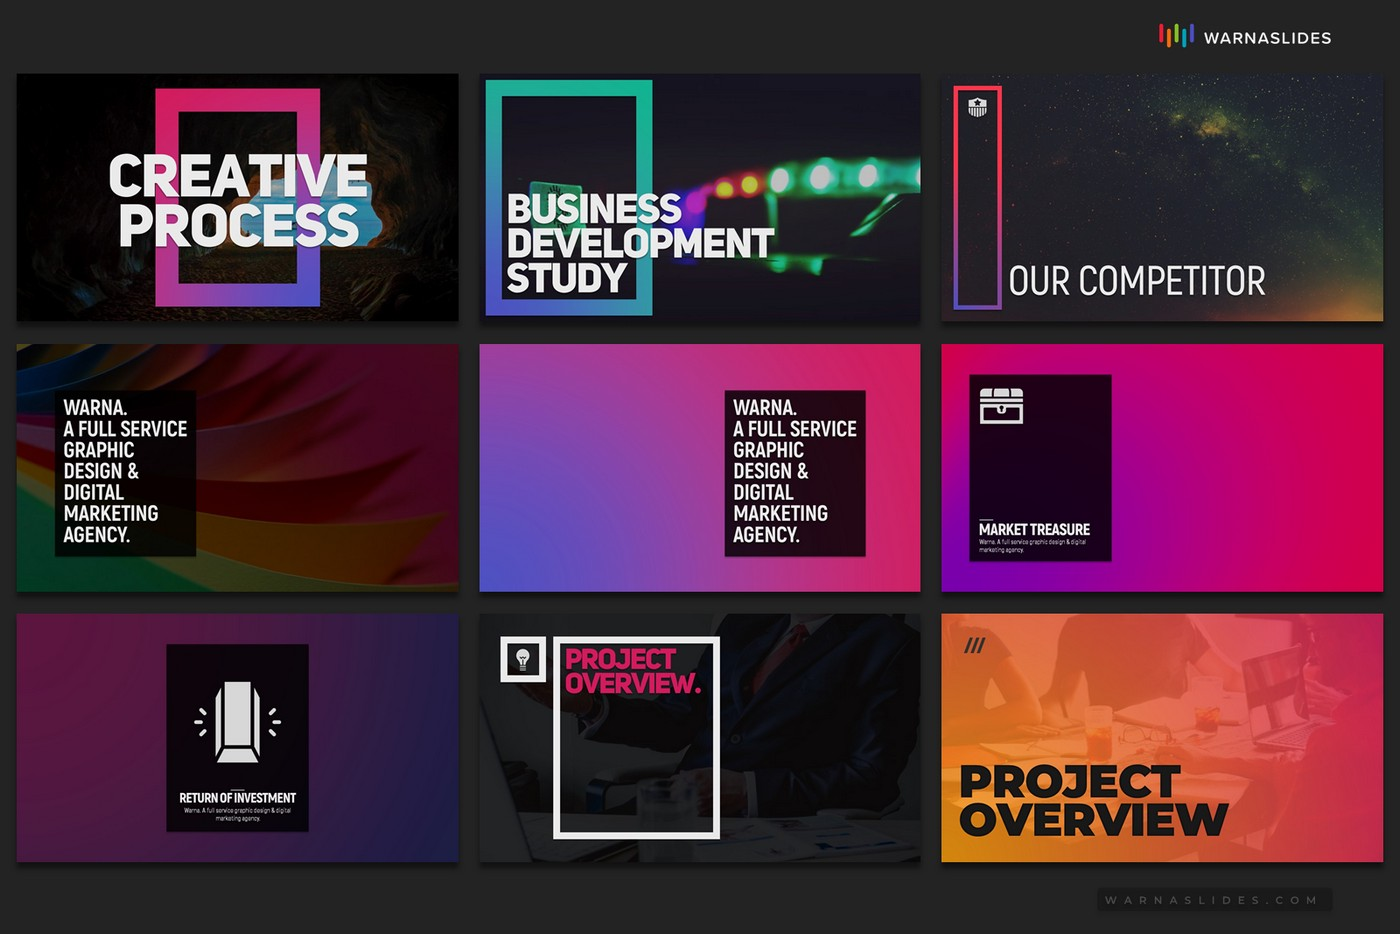 Section-Breaker-Quotes-Social-Media-PowerPoint-Template-for-Business-Pitch-Deck-Professional-Creative-PowerPoint-Icons-008